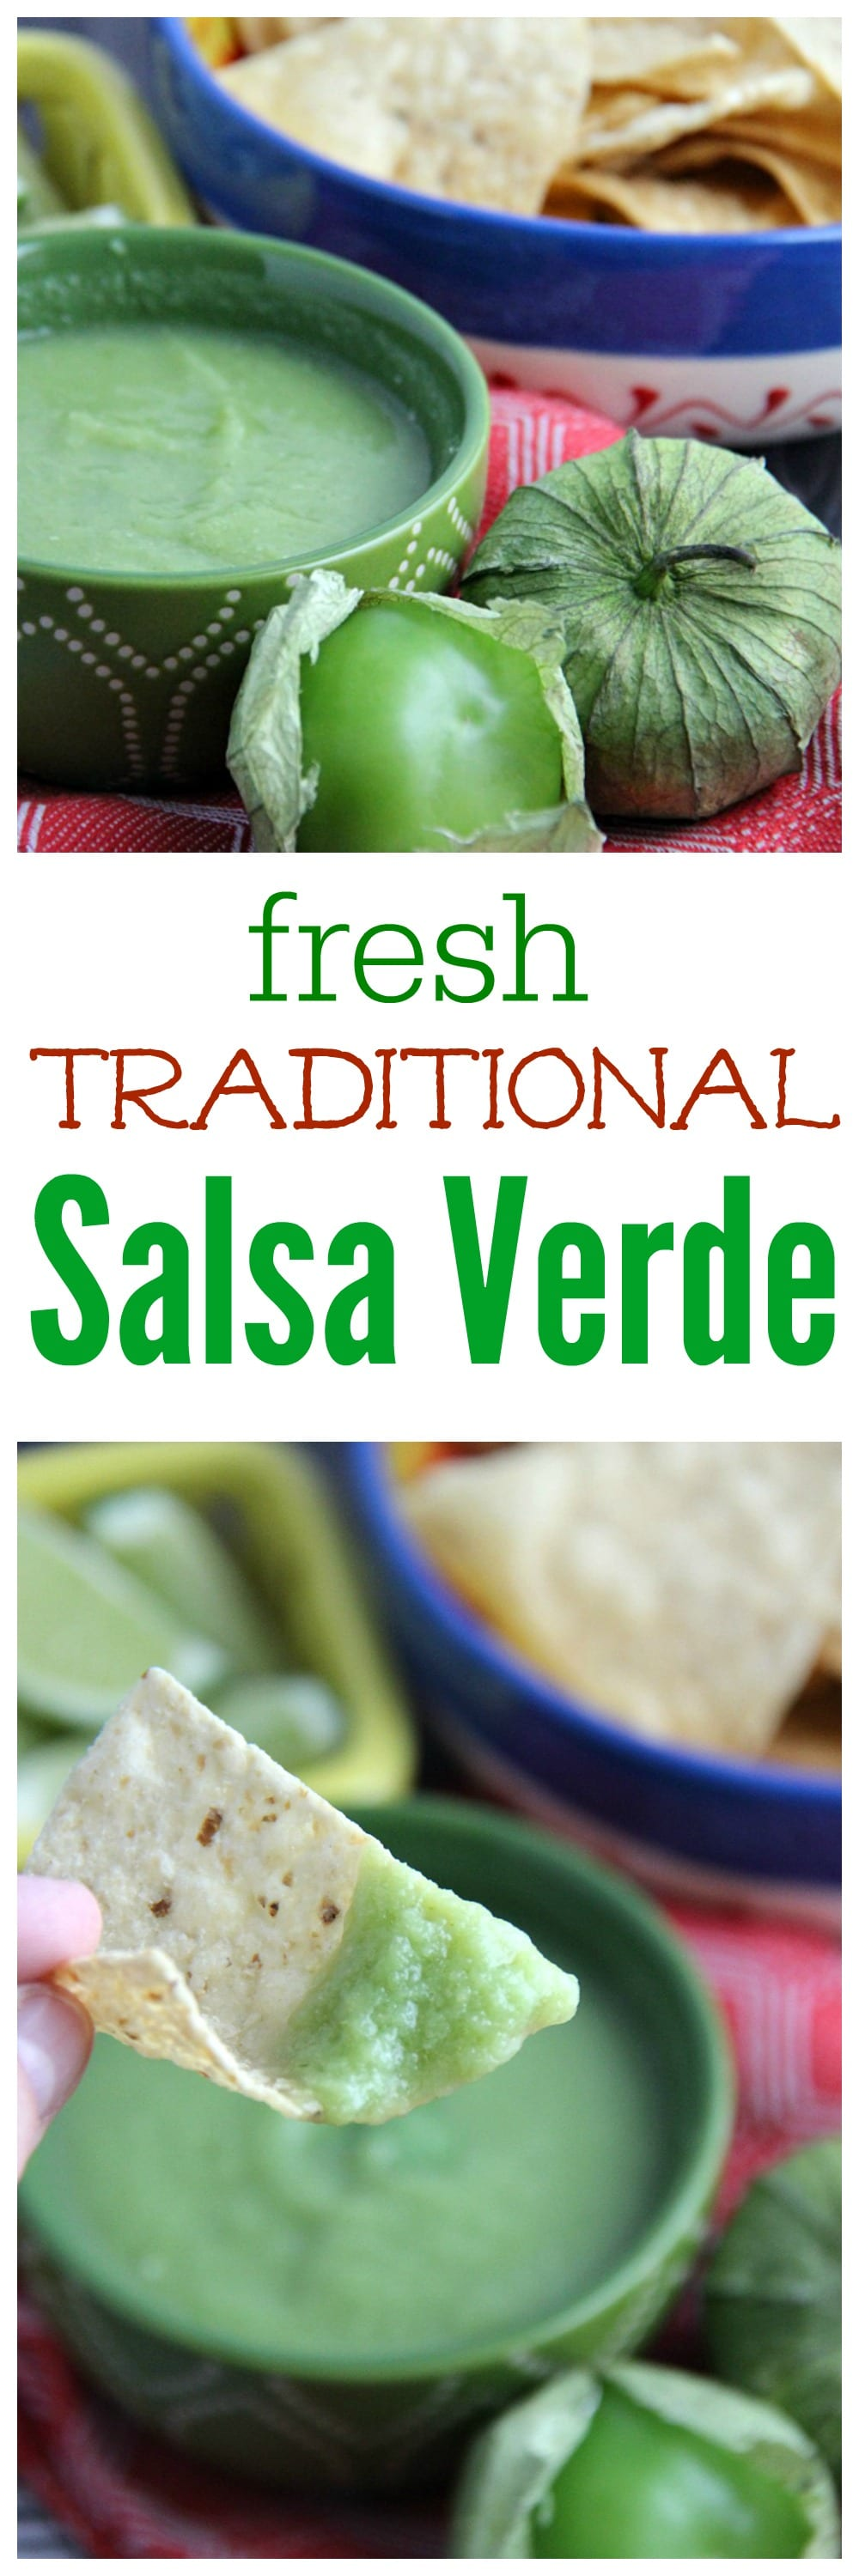 Fresh traditional Salsa Verde Recipe